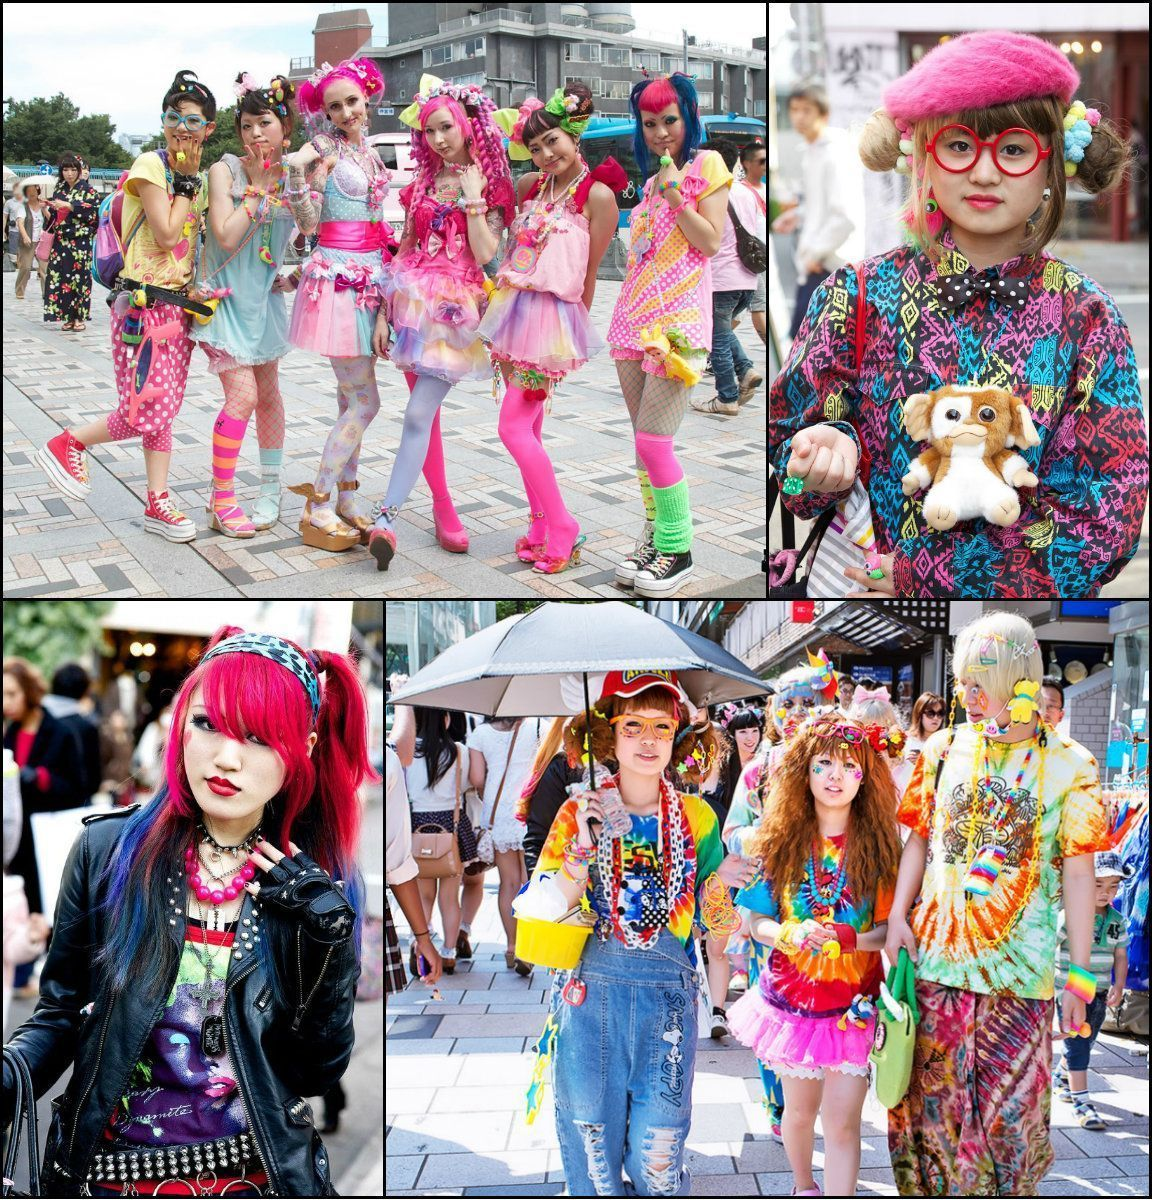 https://s3.amazonaws.com/rebelsmarket_production/images/4475/original/harajuku_style_what_is_it_all_about.jpg?1404472196